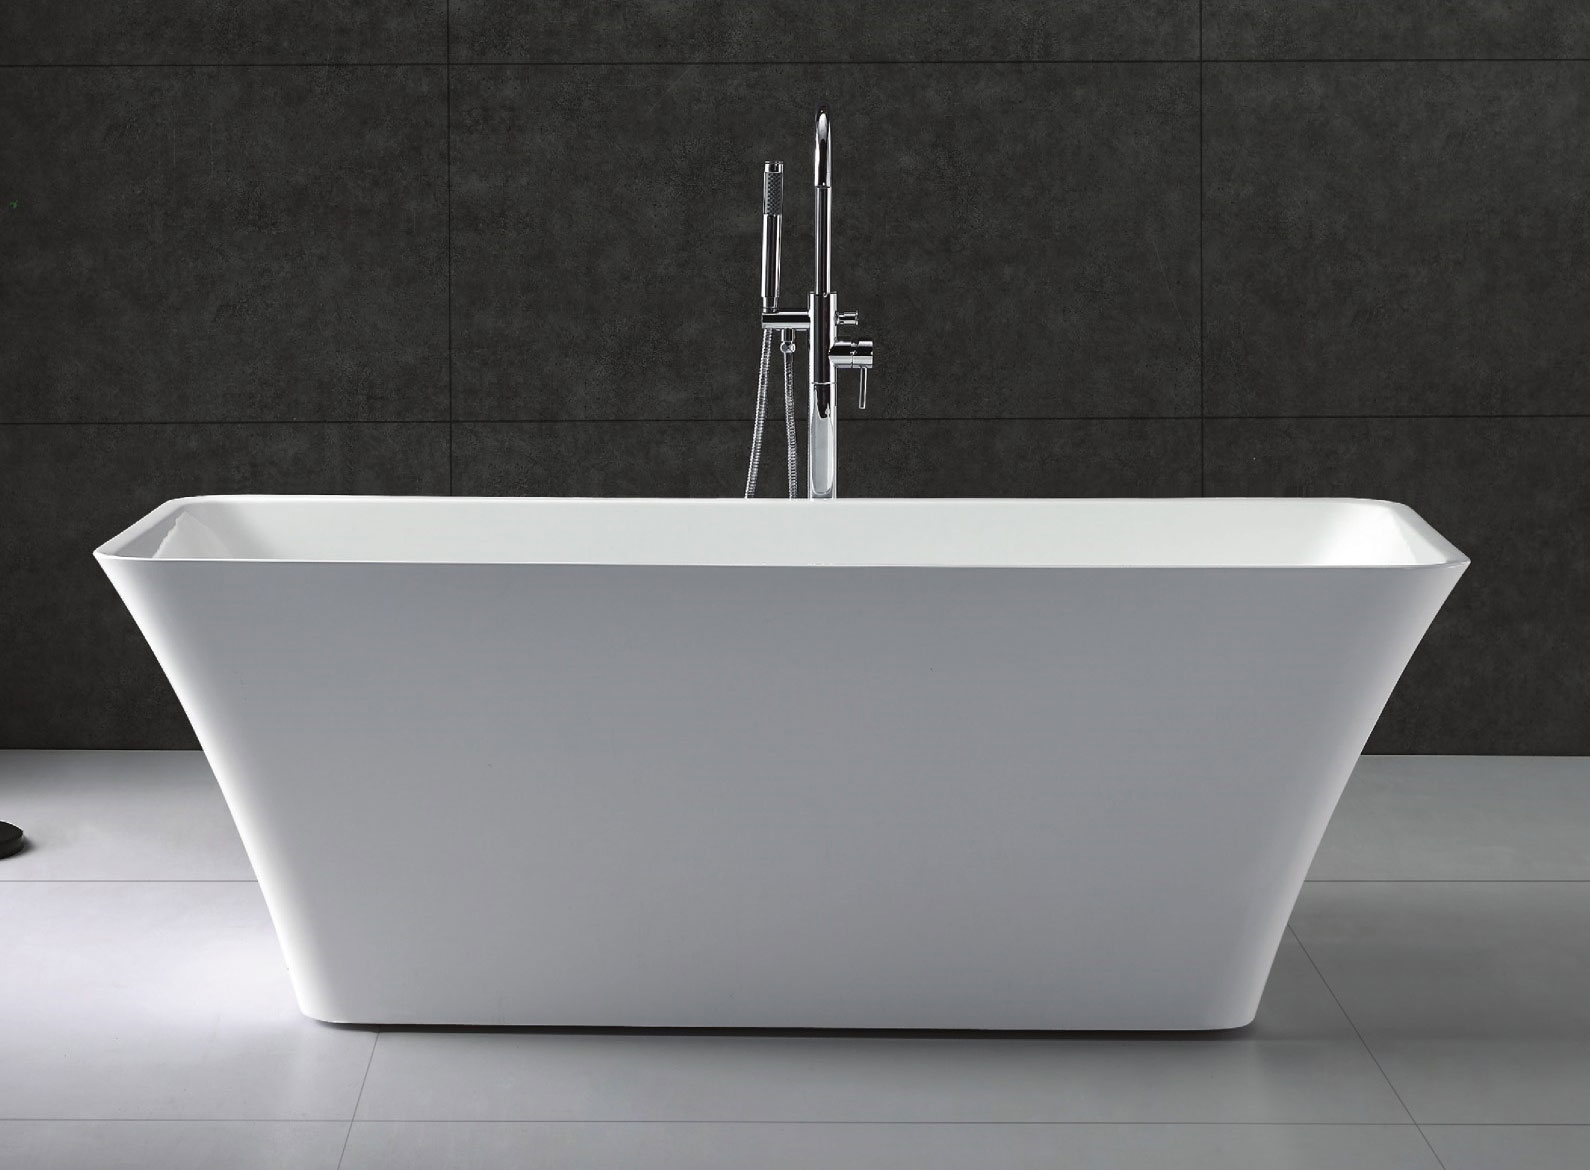 Virtu serenity 67 white free standing soaking bathtub for Free standing soaking tub